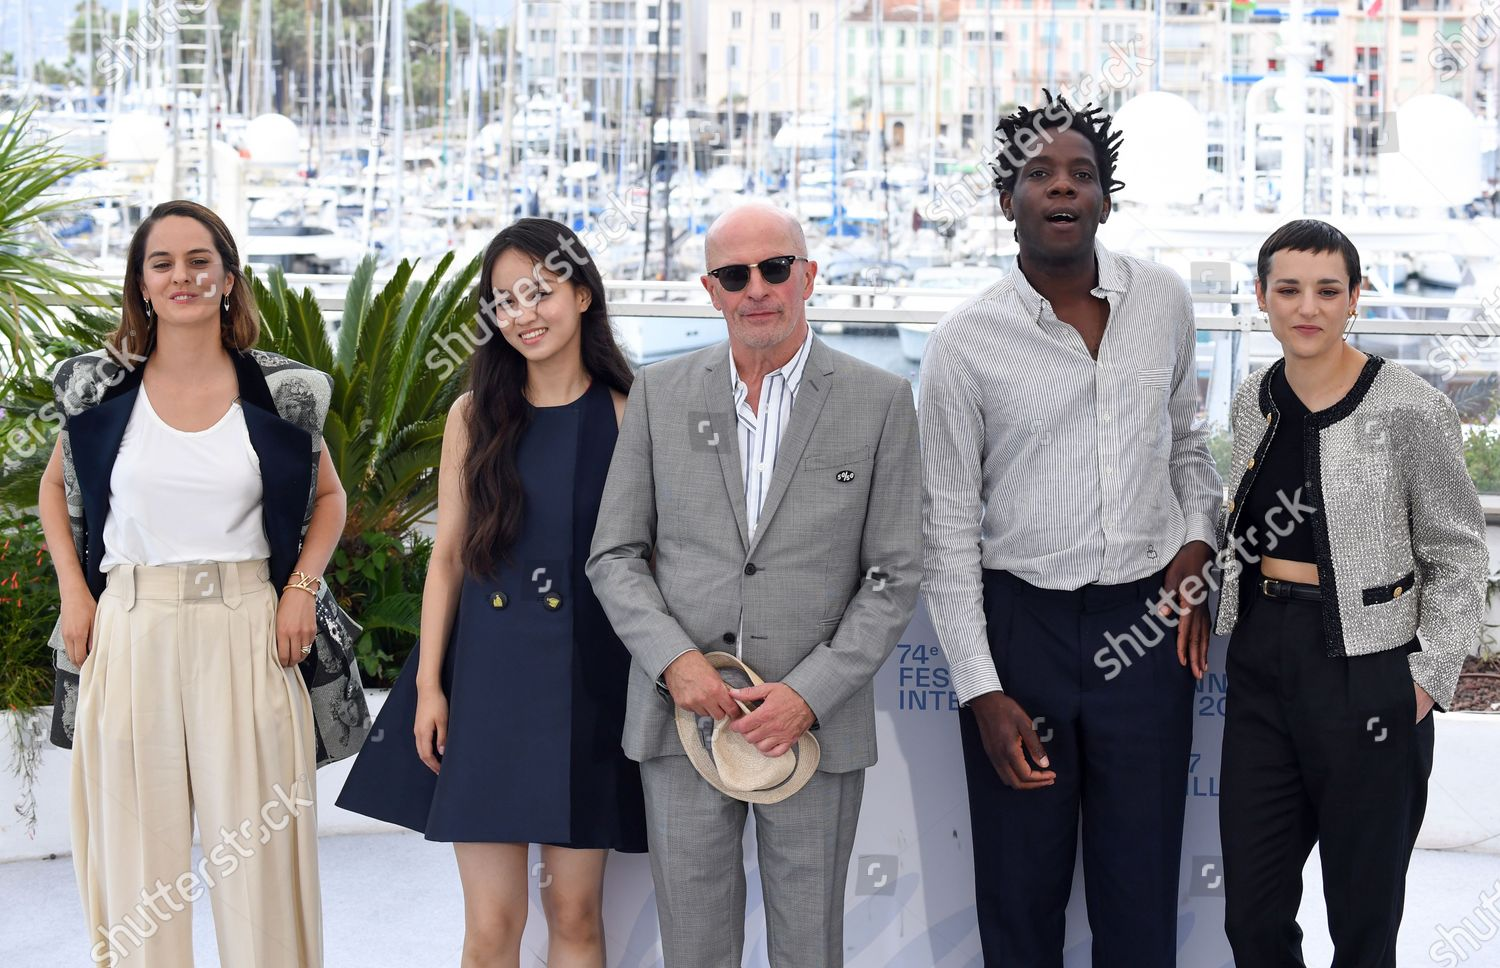 Stock photo of 'Paris 13th' photocall, 74th Cannes Film Festival, France - 15 Jul 2021